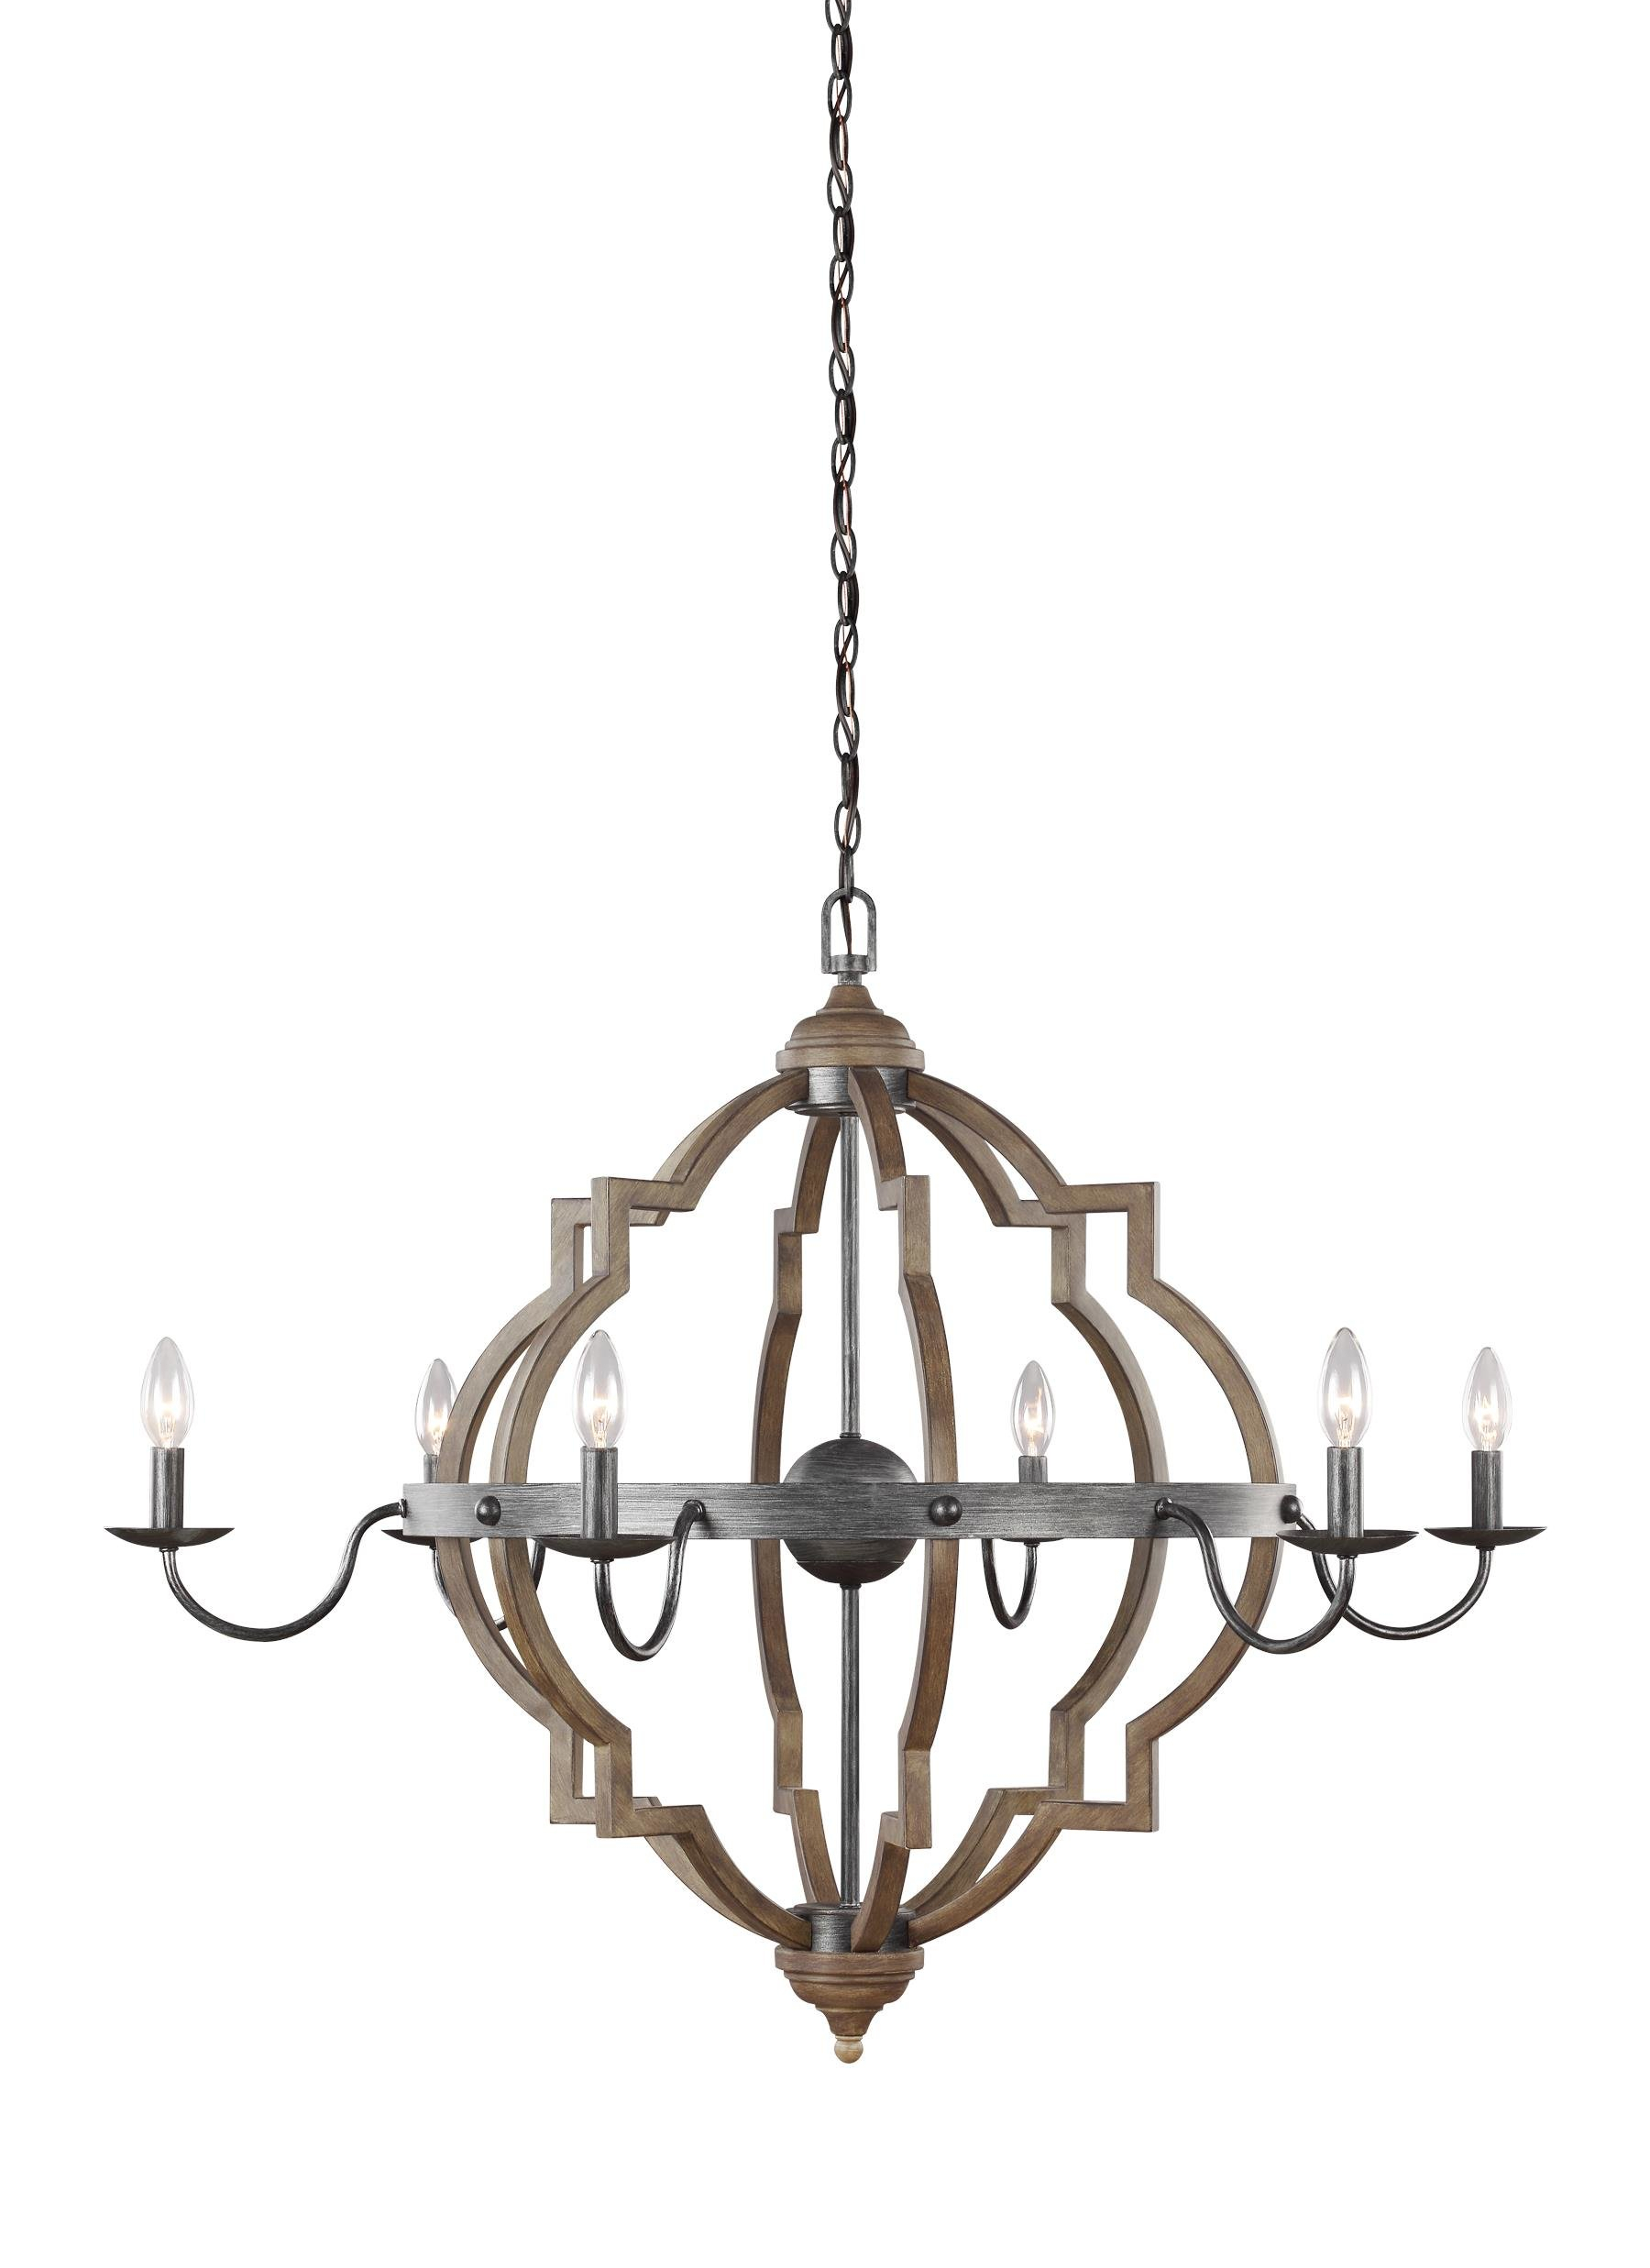 Donna 6 Light Candle Style Chandelier Intended For Watford 6 Light Candle Style Chandeliers (Photo 6 of 30)